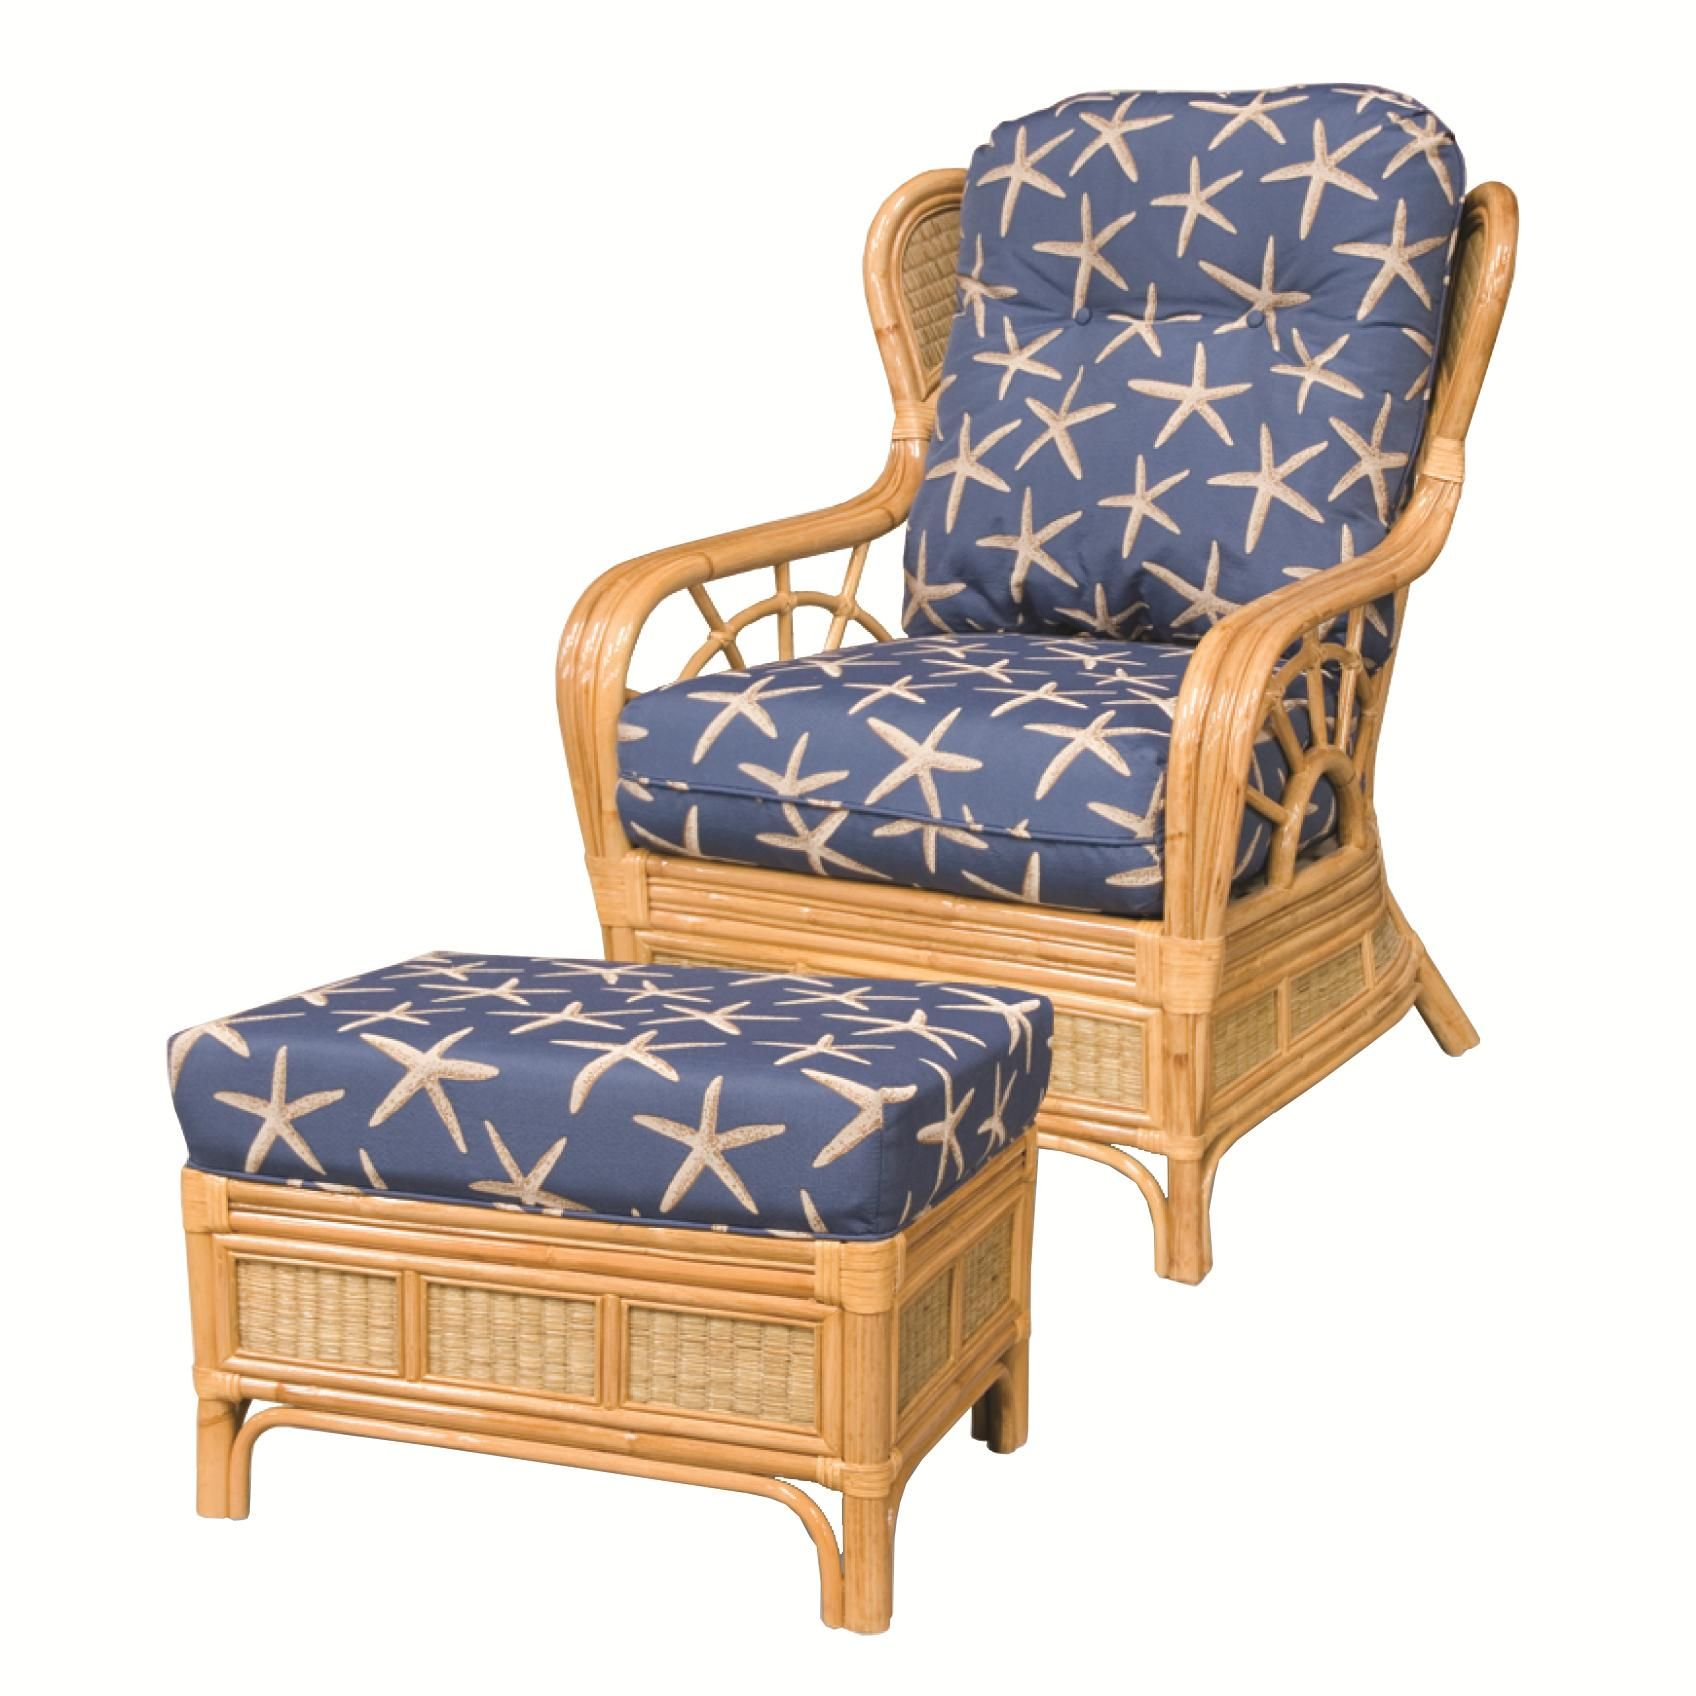 Beautiful 381 Collection Wicker Rattan Chair And Ottoman By Capris Furniture